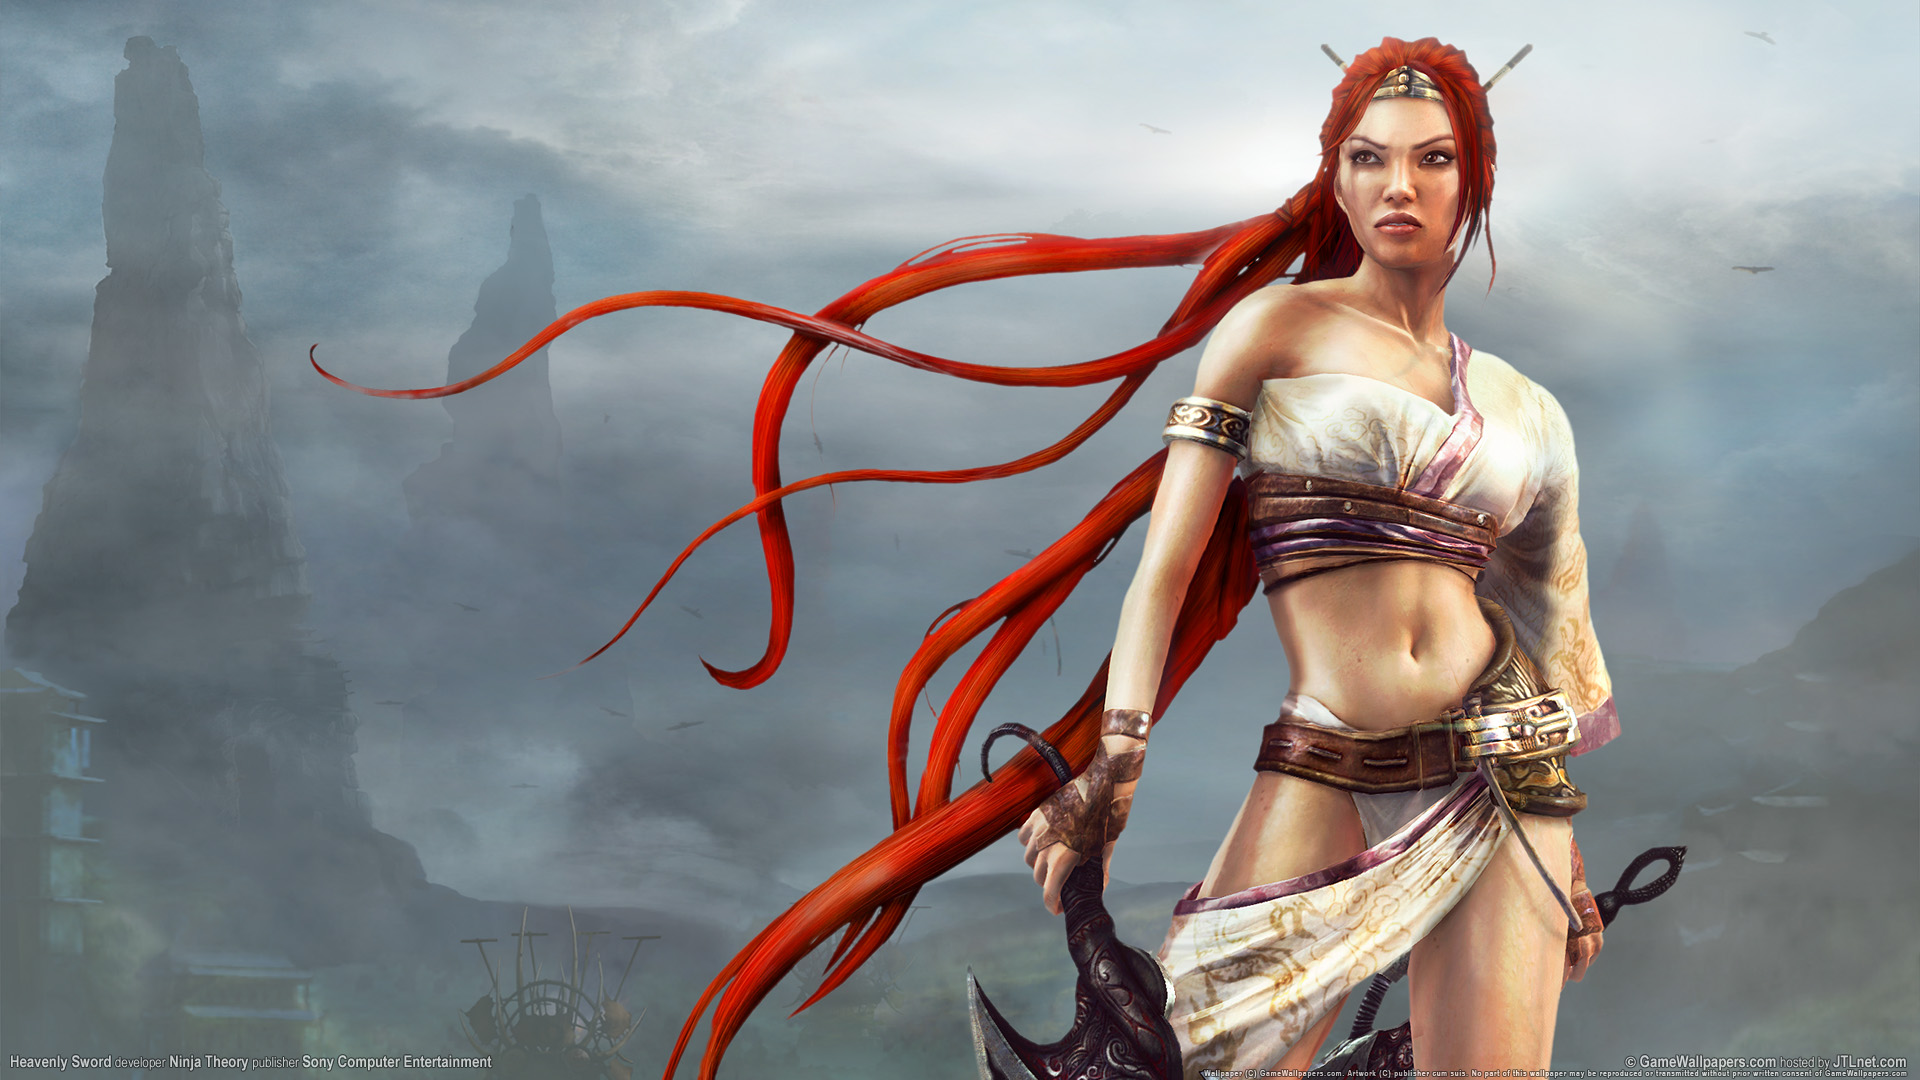 Heavenly Sword Game 633.44 Kb